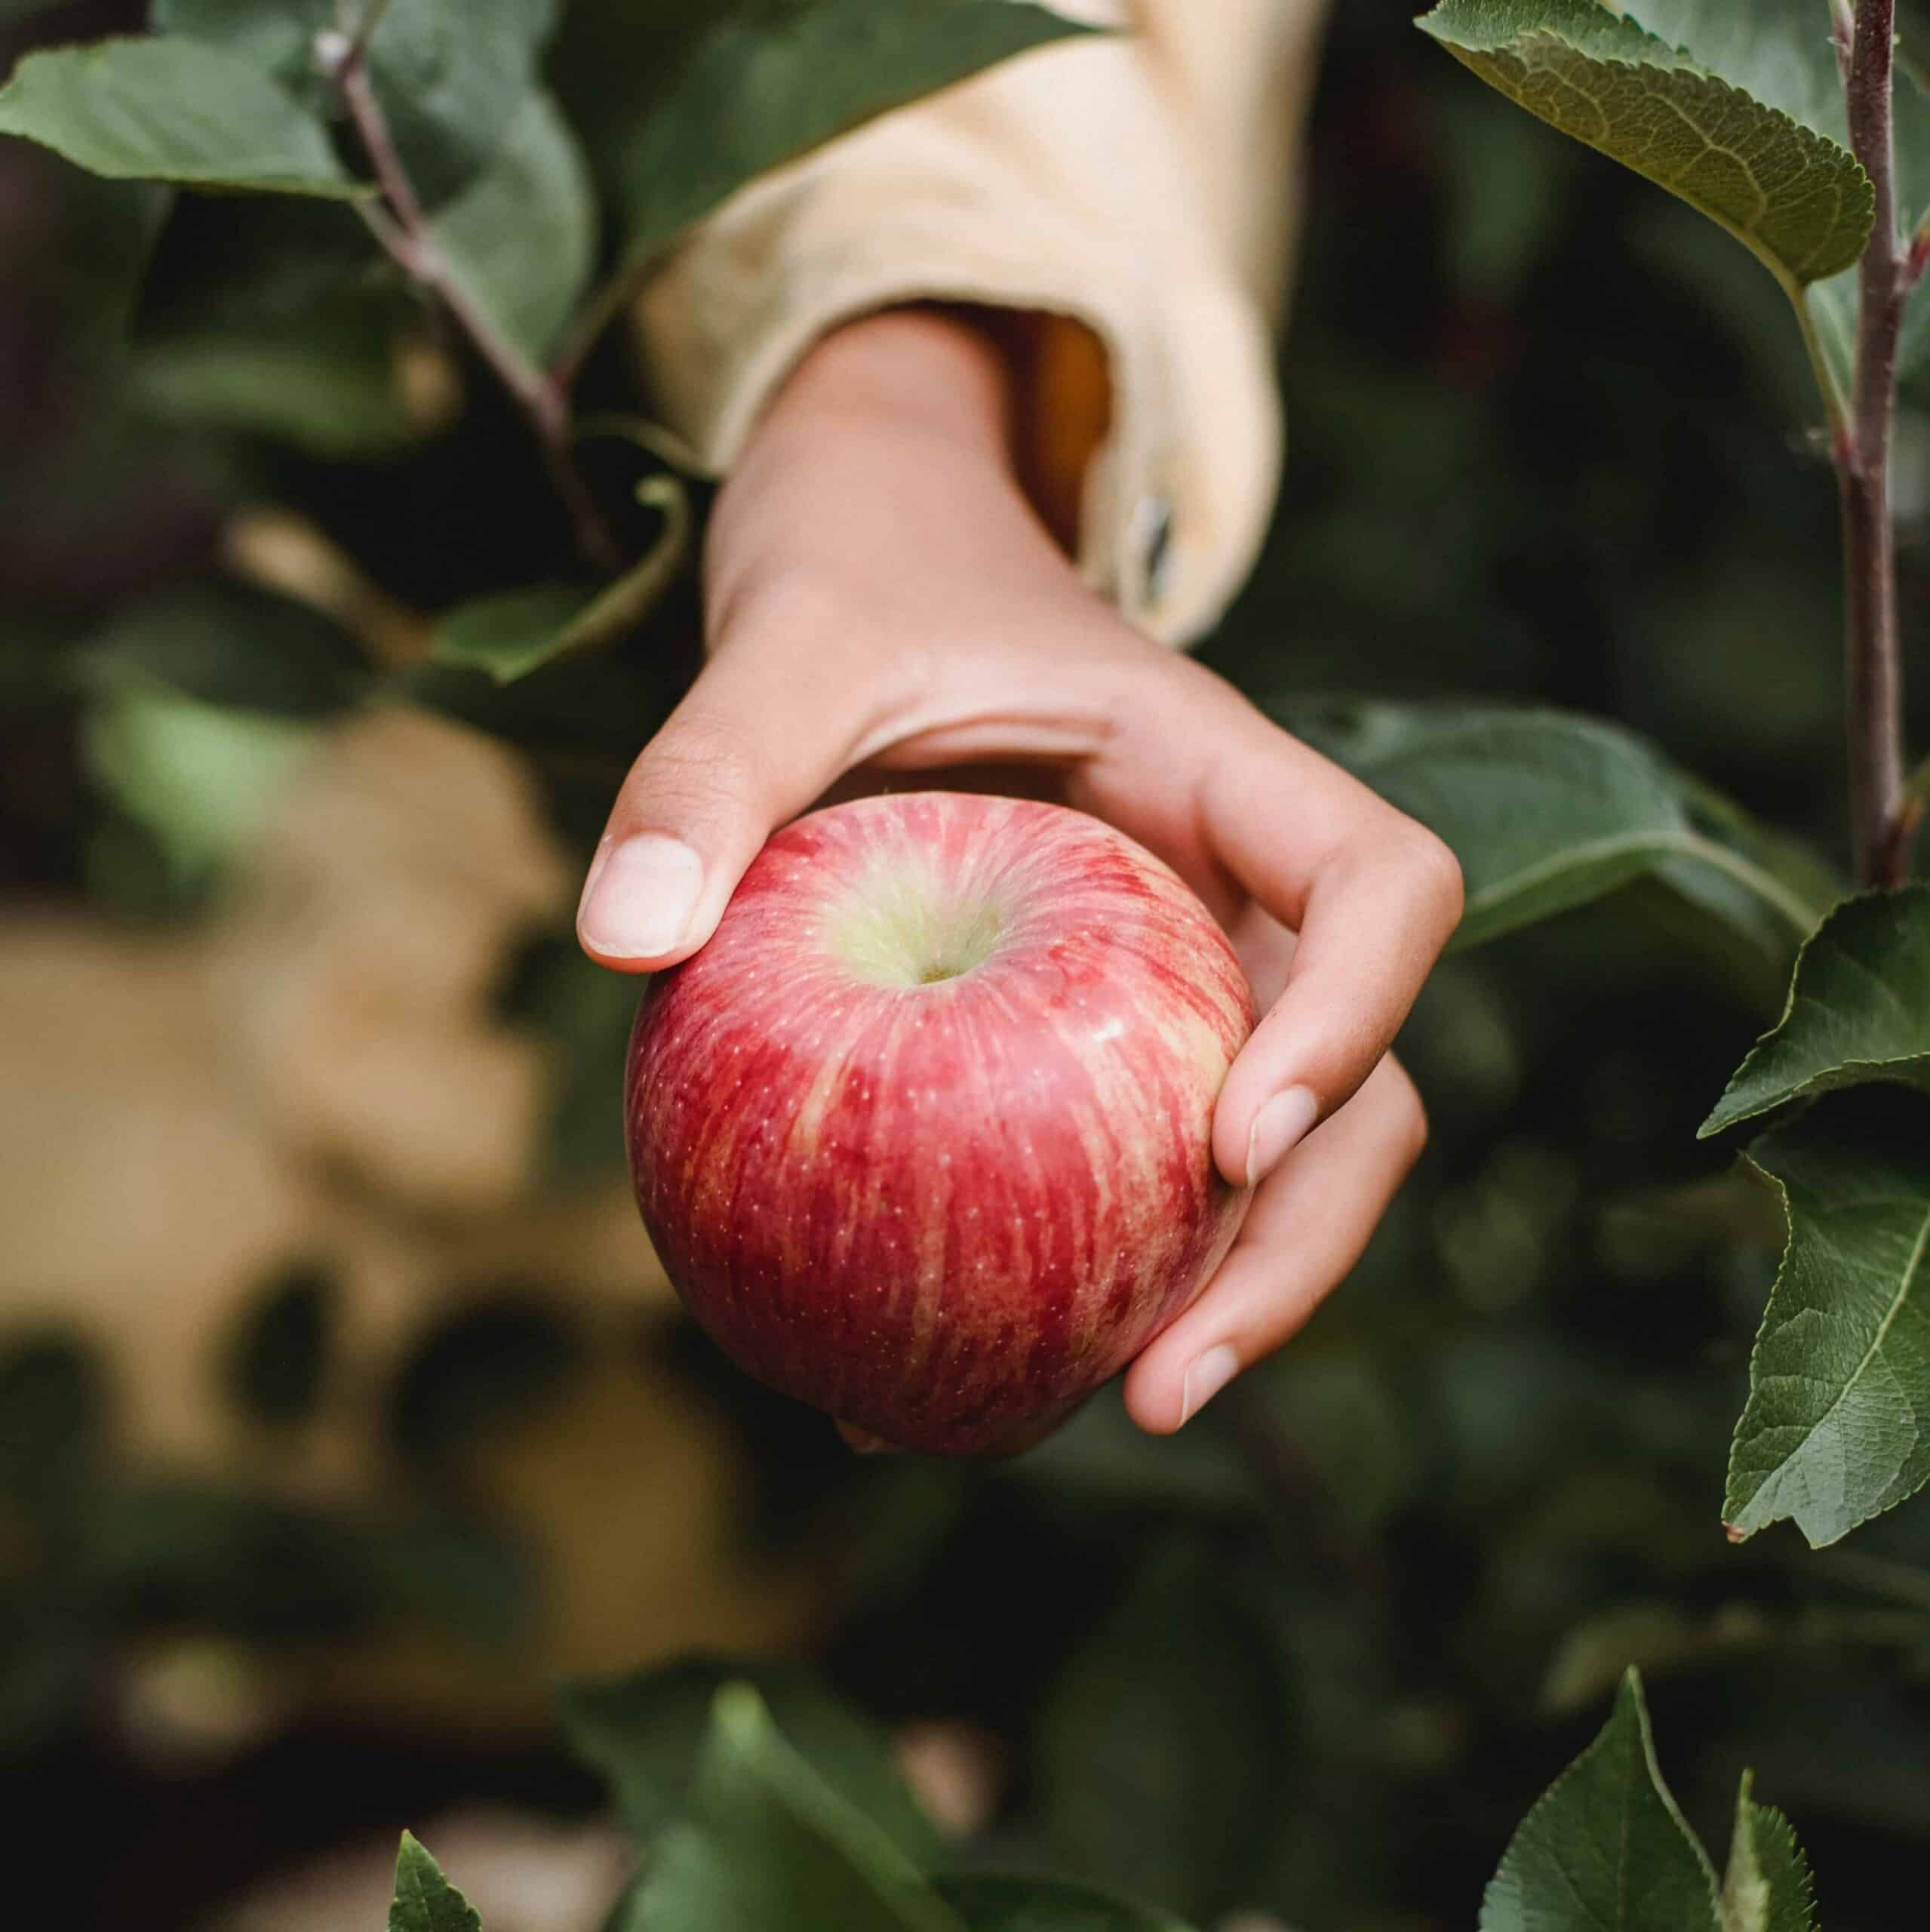 A hand reaching out to pick an apple.